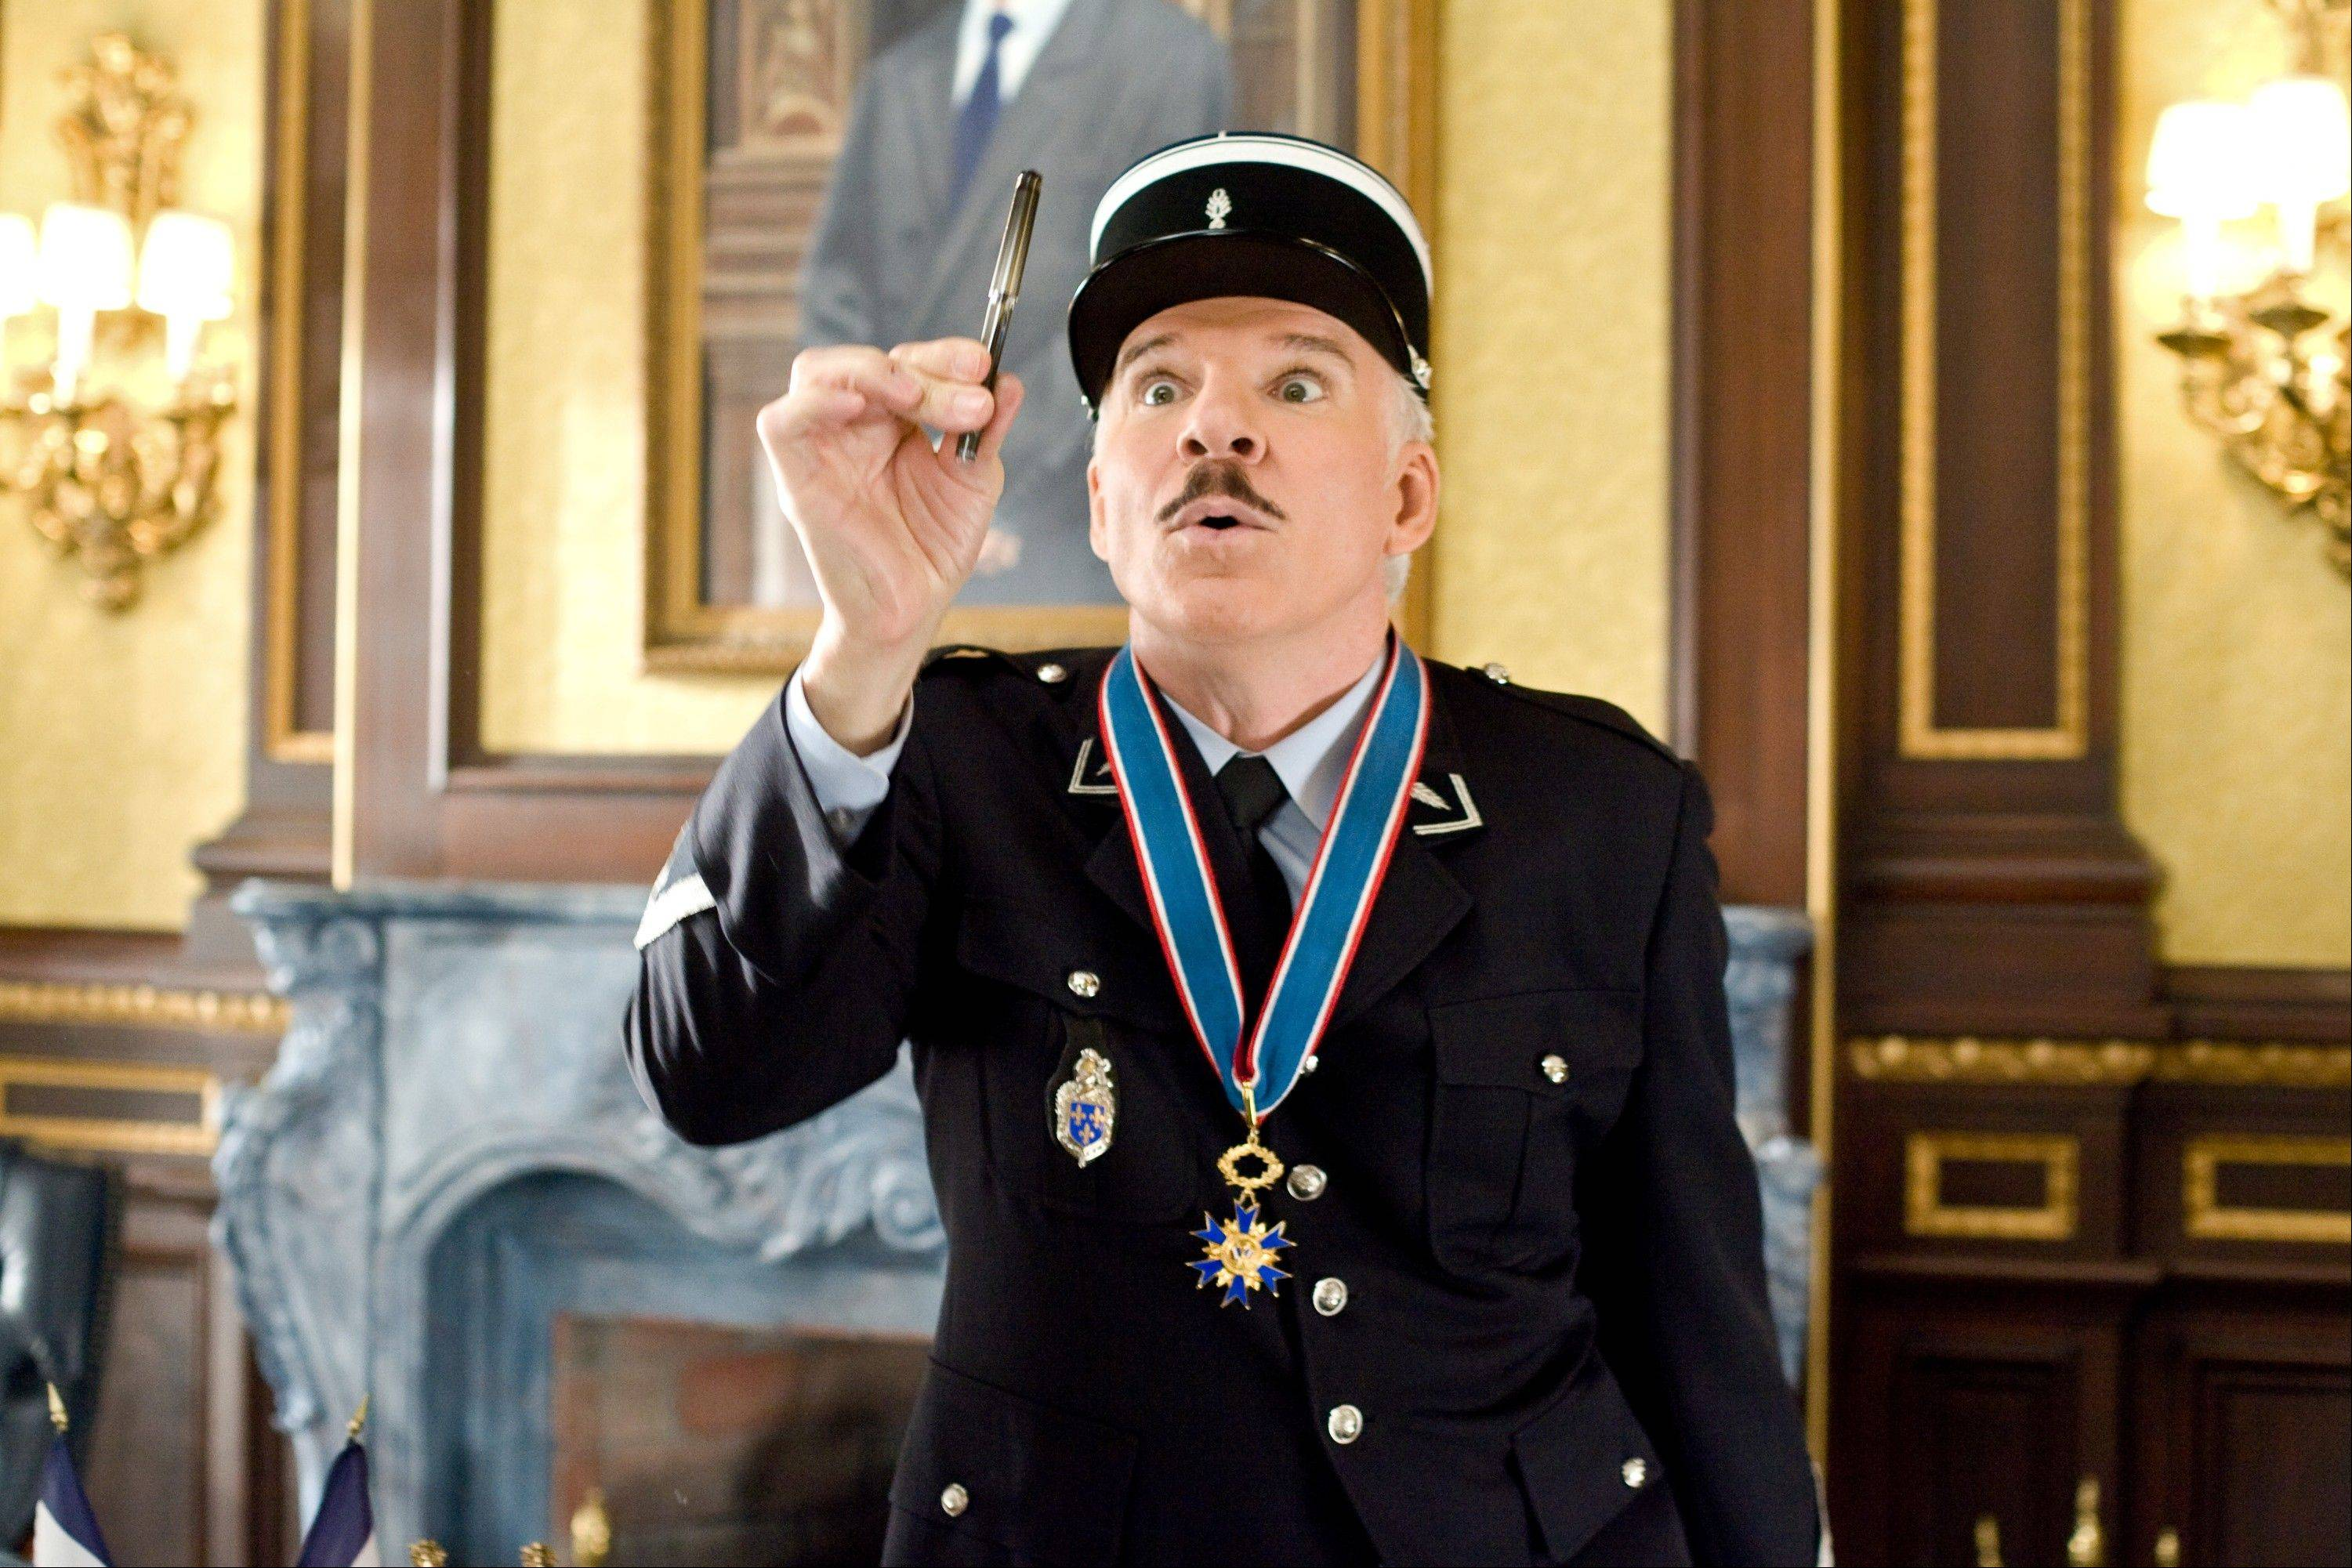 "In this image released by Columbia/Sony Pictures, Steve Martin is shown in a scene from, ""The Pink Panther 2."" The Board of Governors of the Academy of Motion Picture Arts and Sciences will present Honorary Awards to Martin, Angela Lansbury, and Piero Tosi, and the Jean Hersholt Humanitarian Award to Angelina Jolie. All four awards will be presented at the Academy's 5th Annual Governors Awards on Saturday, November 16, 2013, at the Ray Dolby Ballroom at the Hollywood & Highland Center in the Hollywood section of Los Angeles."